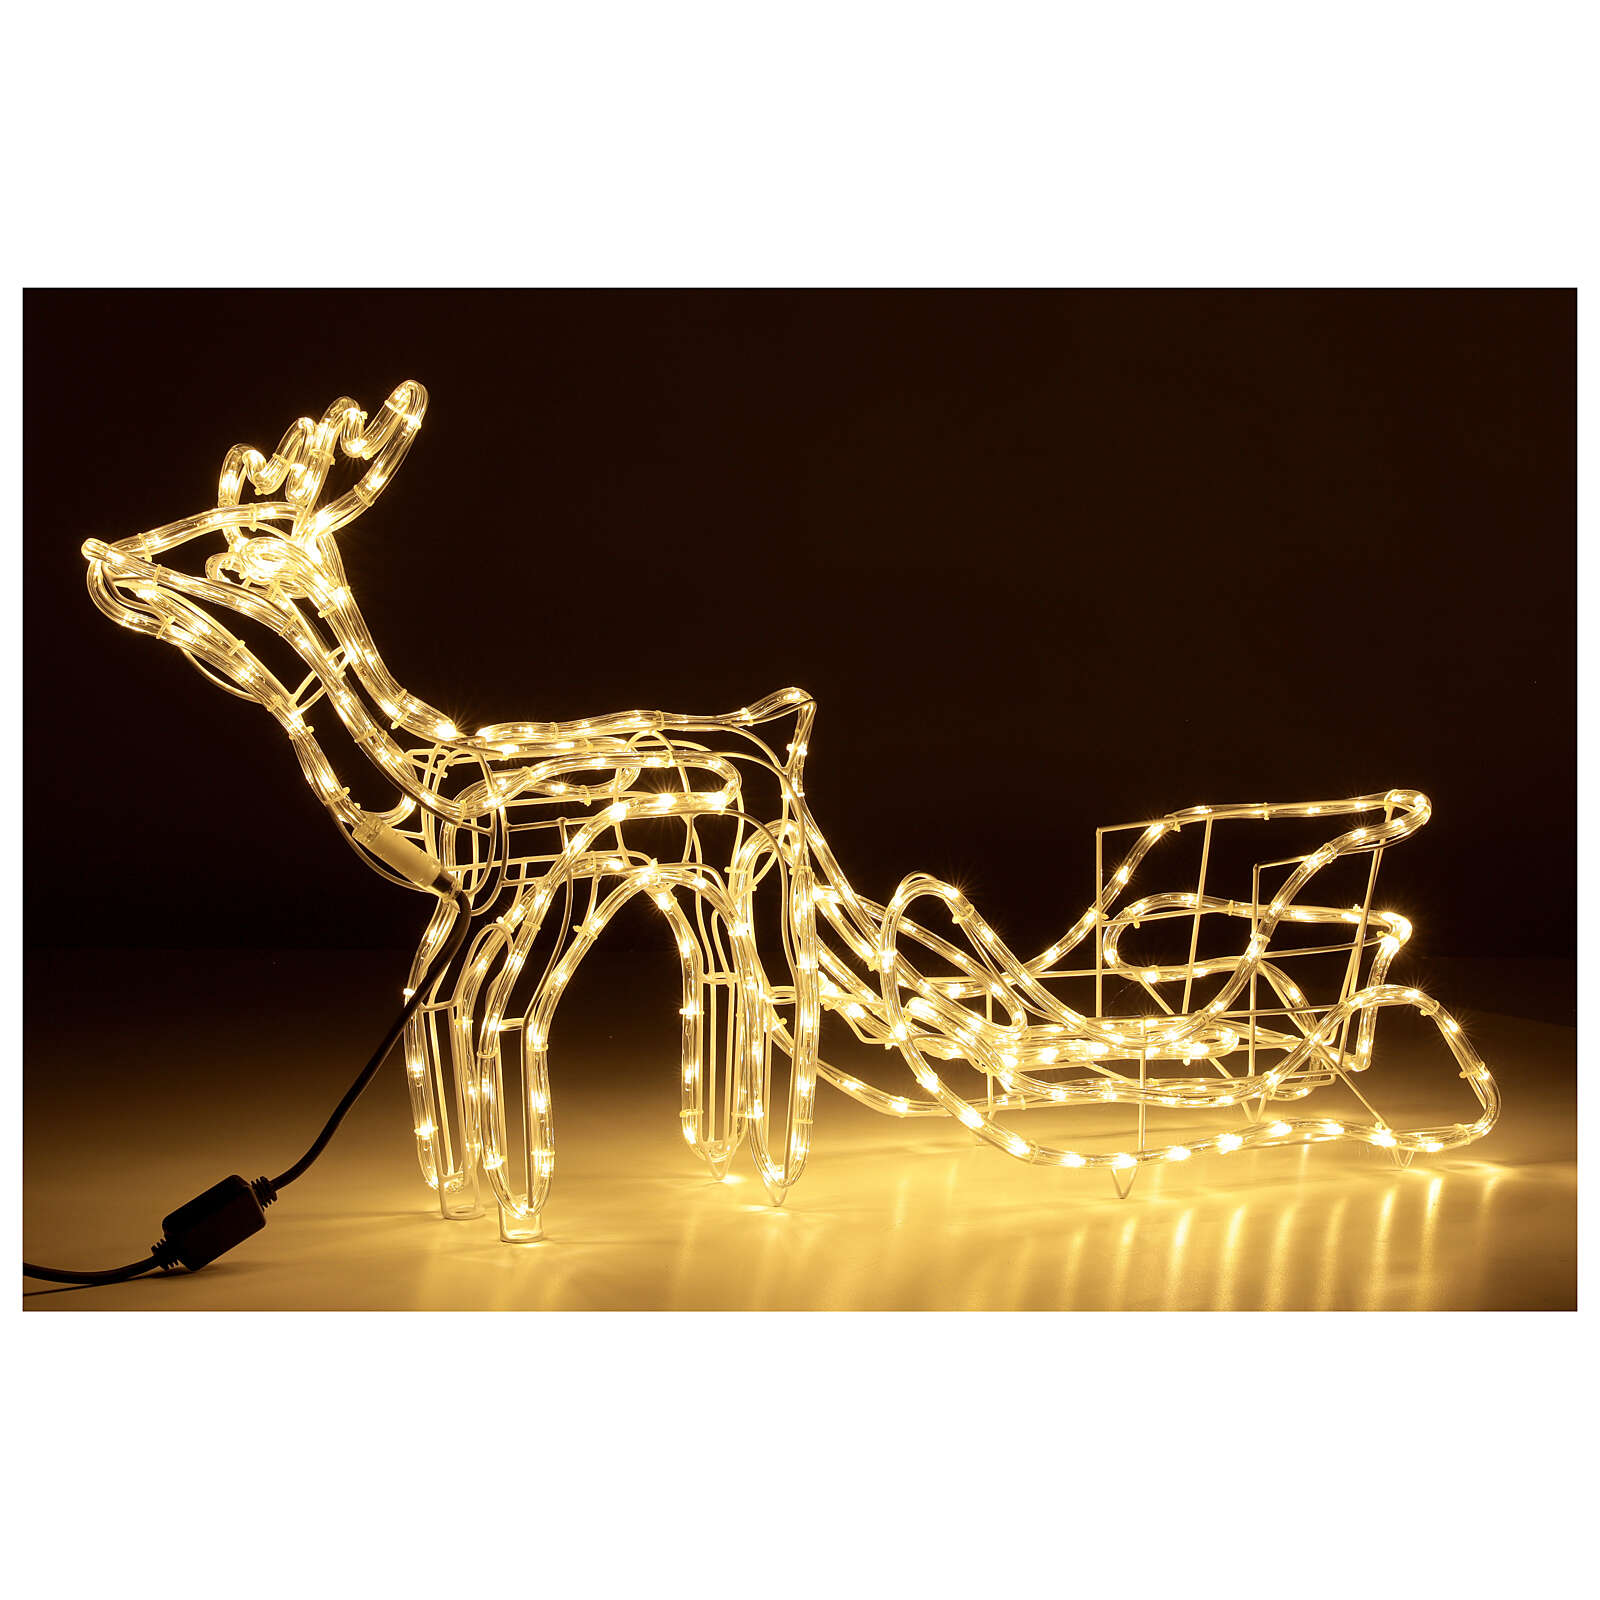 Lighted Reindeer with sleigh warm white 264 LEDs h 52 cm electric OUTDOOR 3